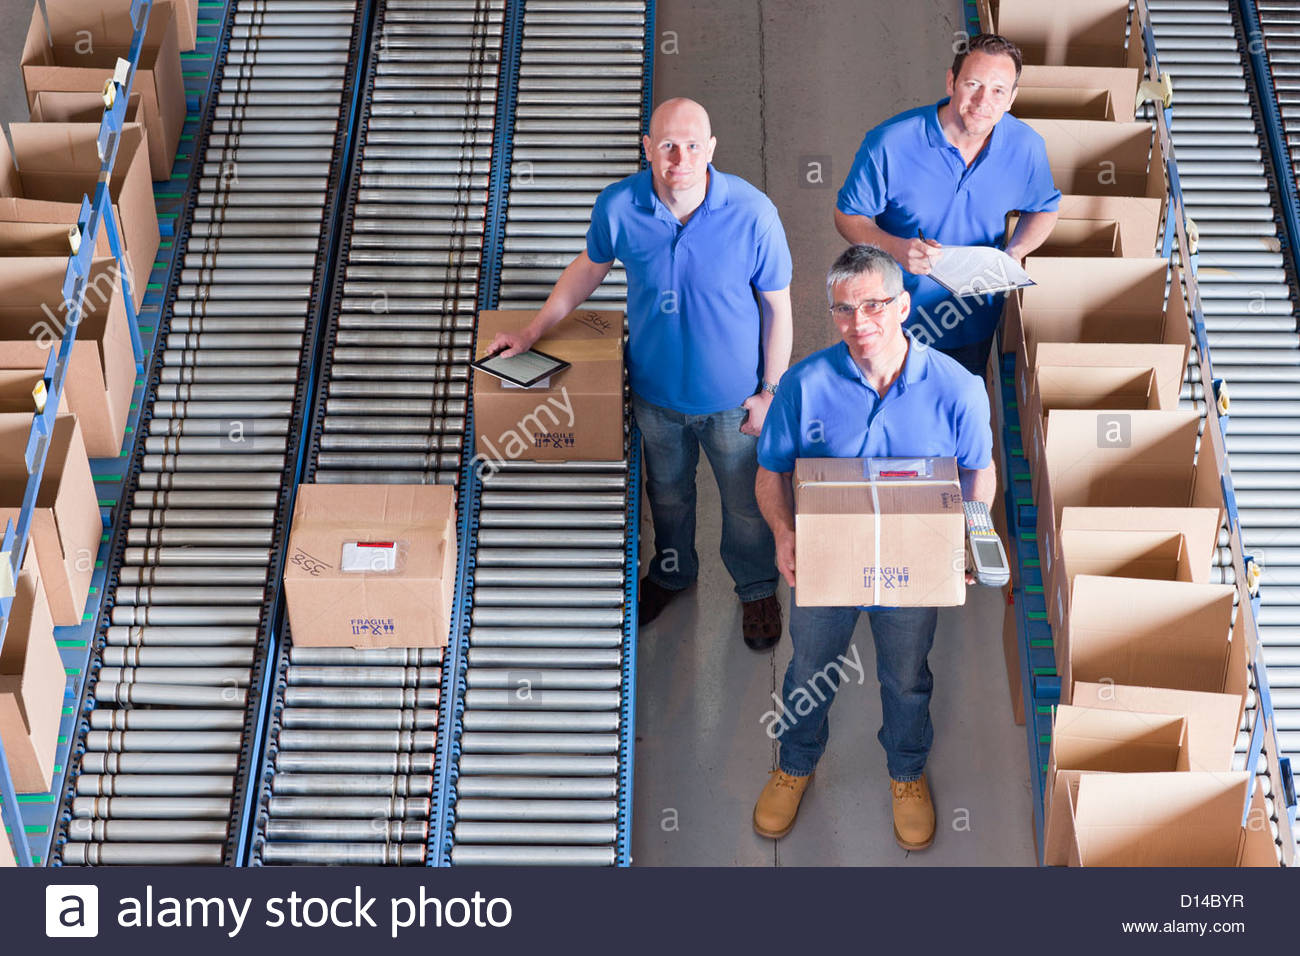 Portrait of smiling workers packing boxes on conveyor belts in distribution warehouse Stock Photo